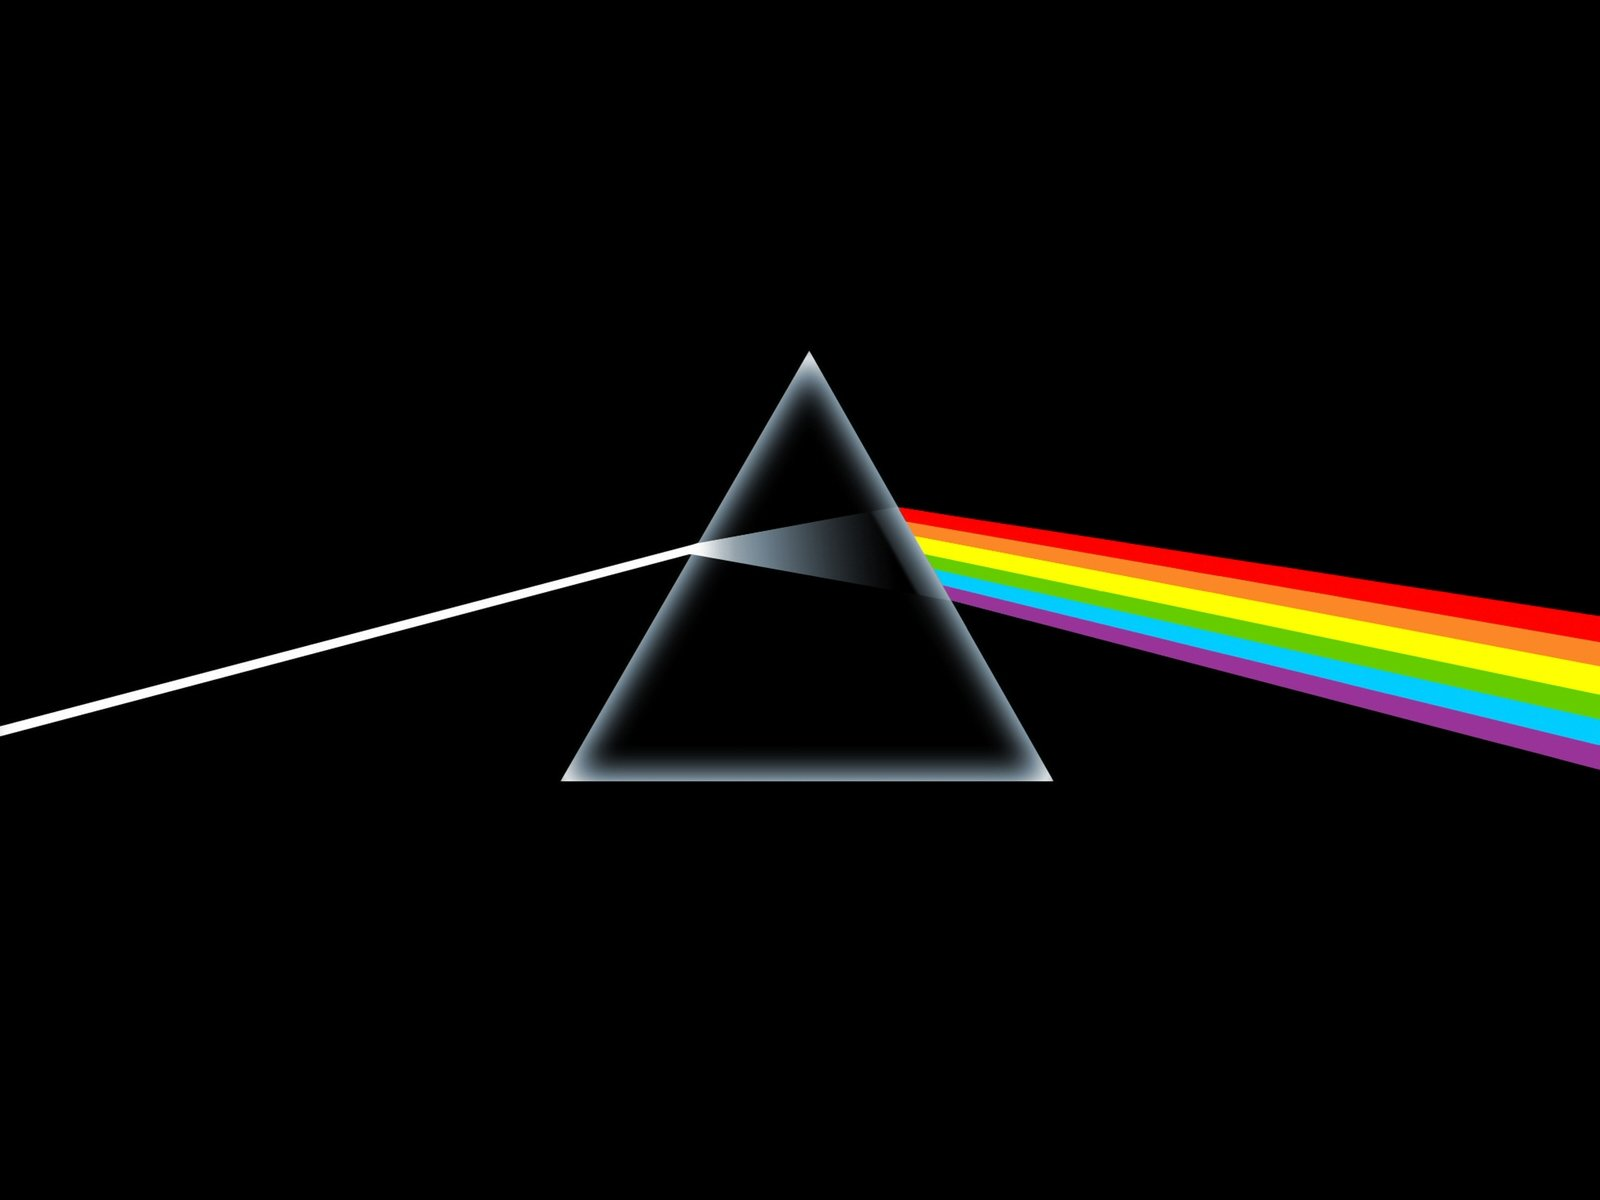 pink floyd dark side of the moon wallpaper pink floyd pictures links 1 1600x1200